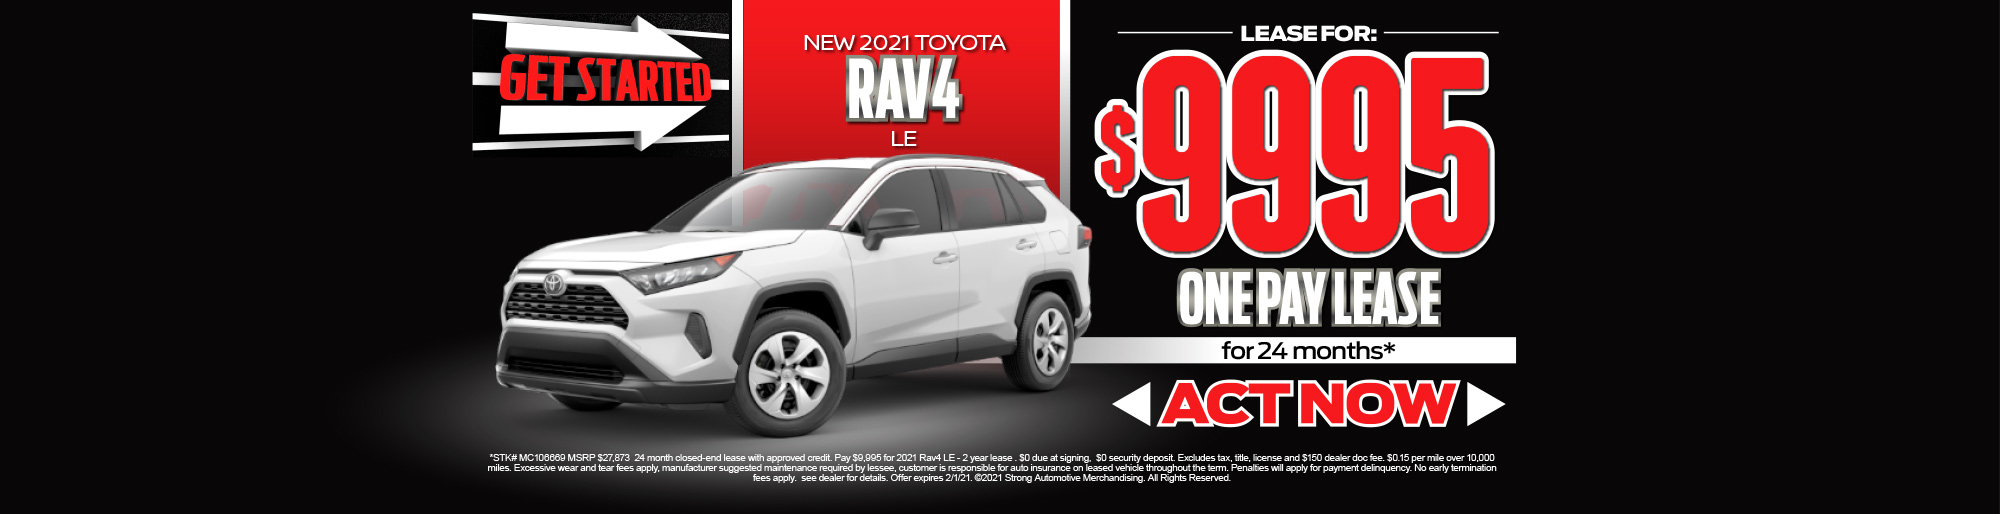 NEW 2021 TOYOTA RAV4 LE $9995/ONE PAY LEASE FOR 24 MOS* - ACT NOW